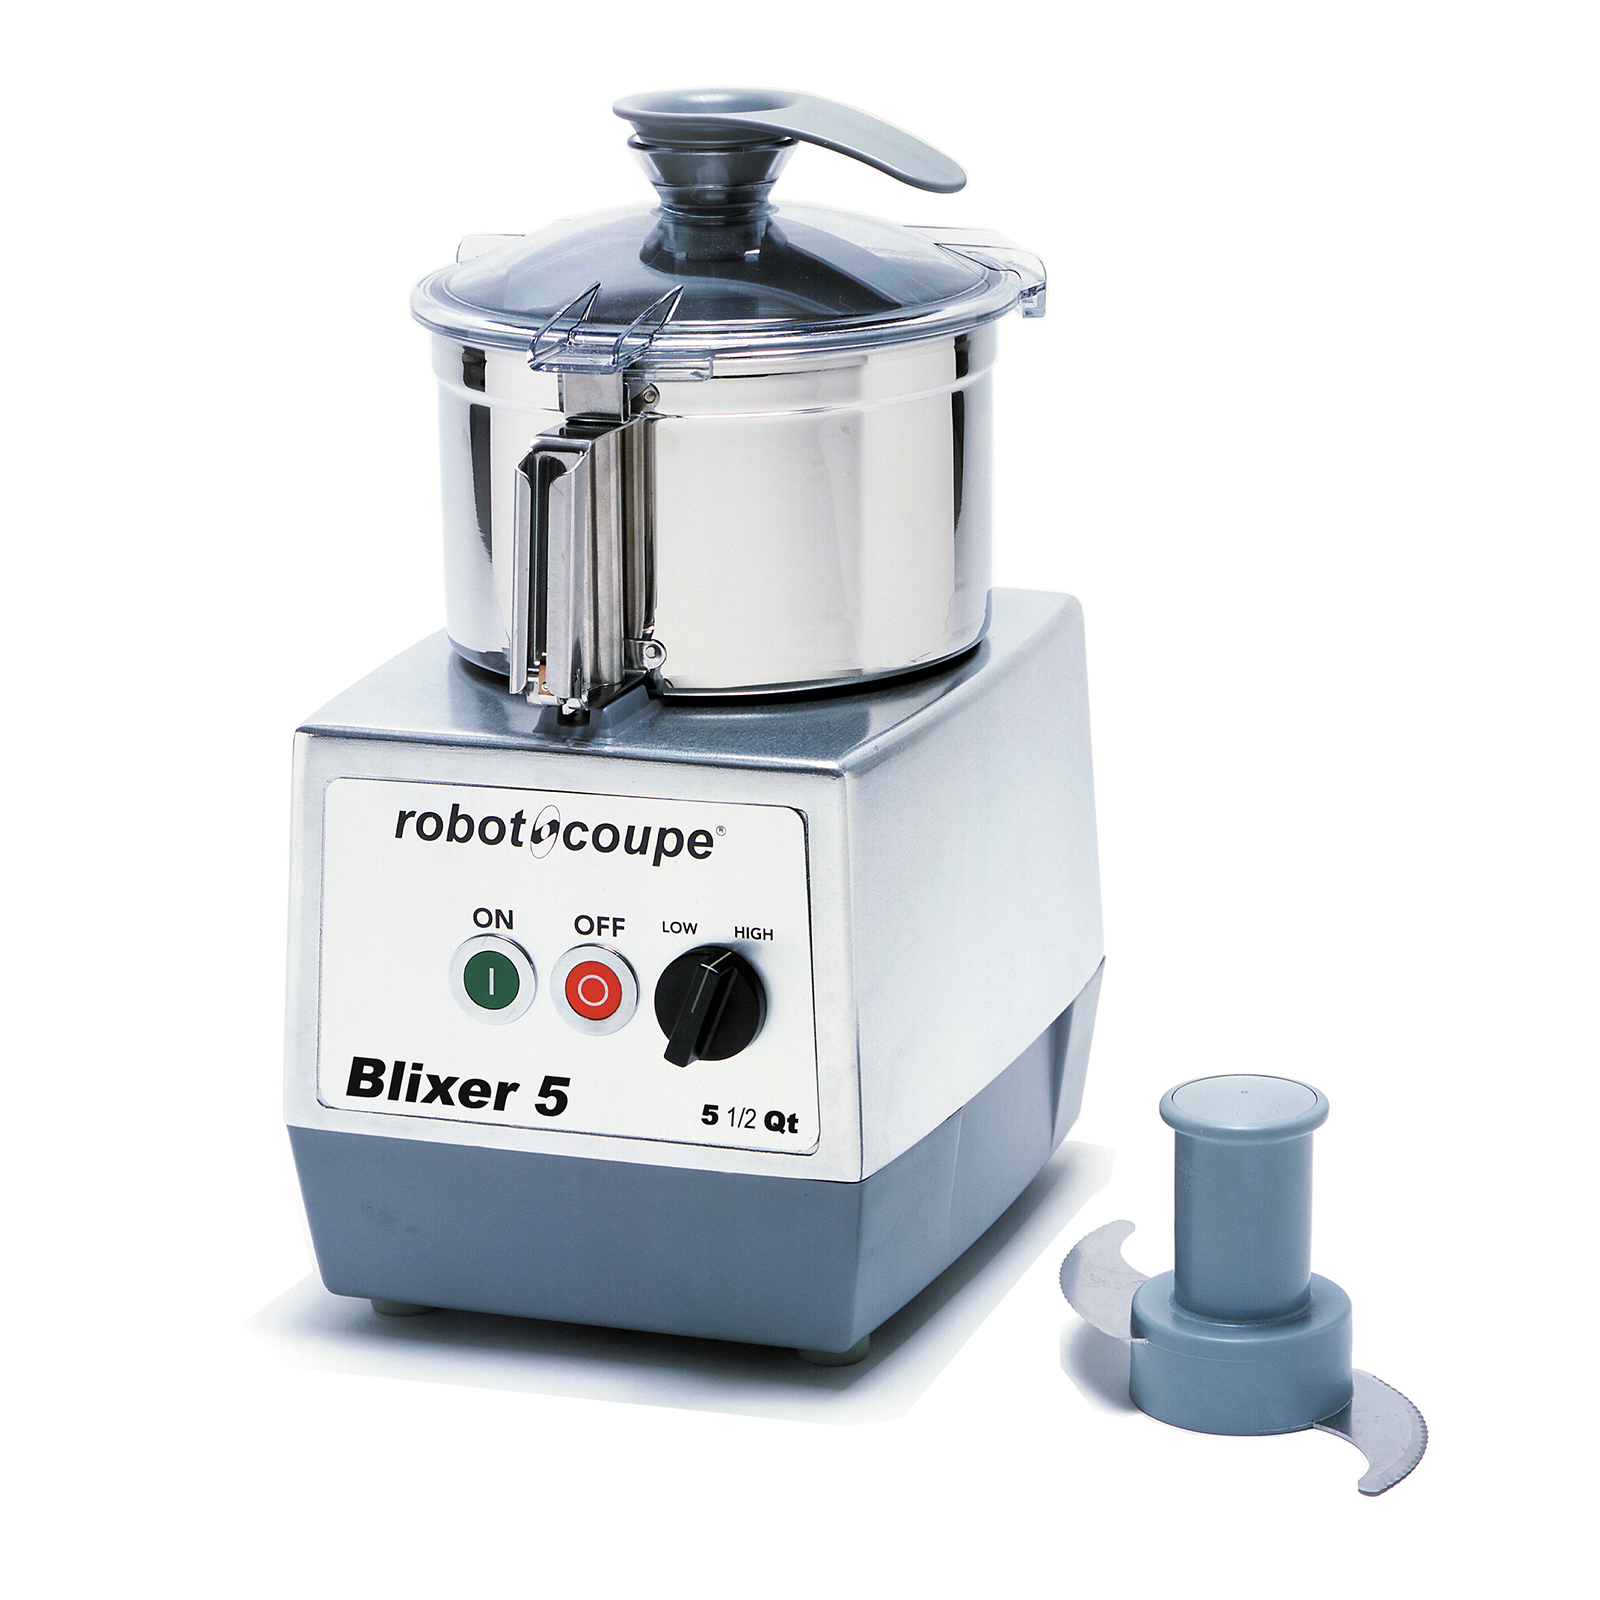 Robot Coupe BLIXER 5 (3 PHASE) food processor, benchtop / countertop